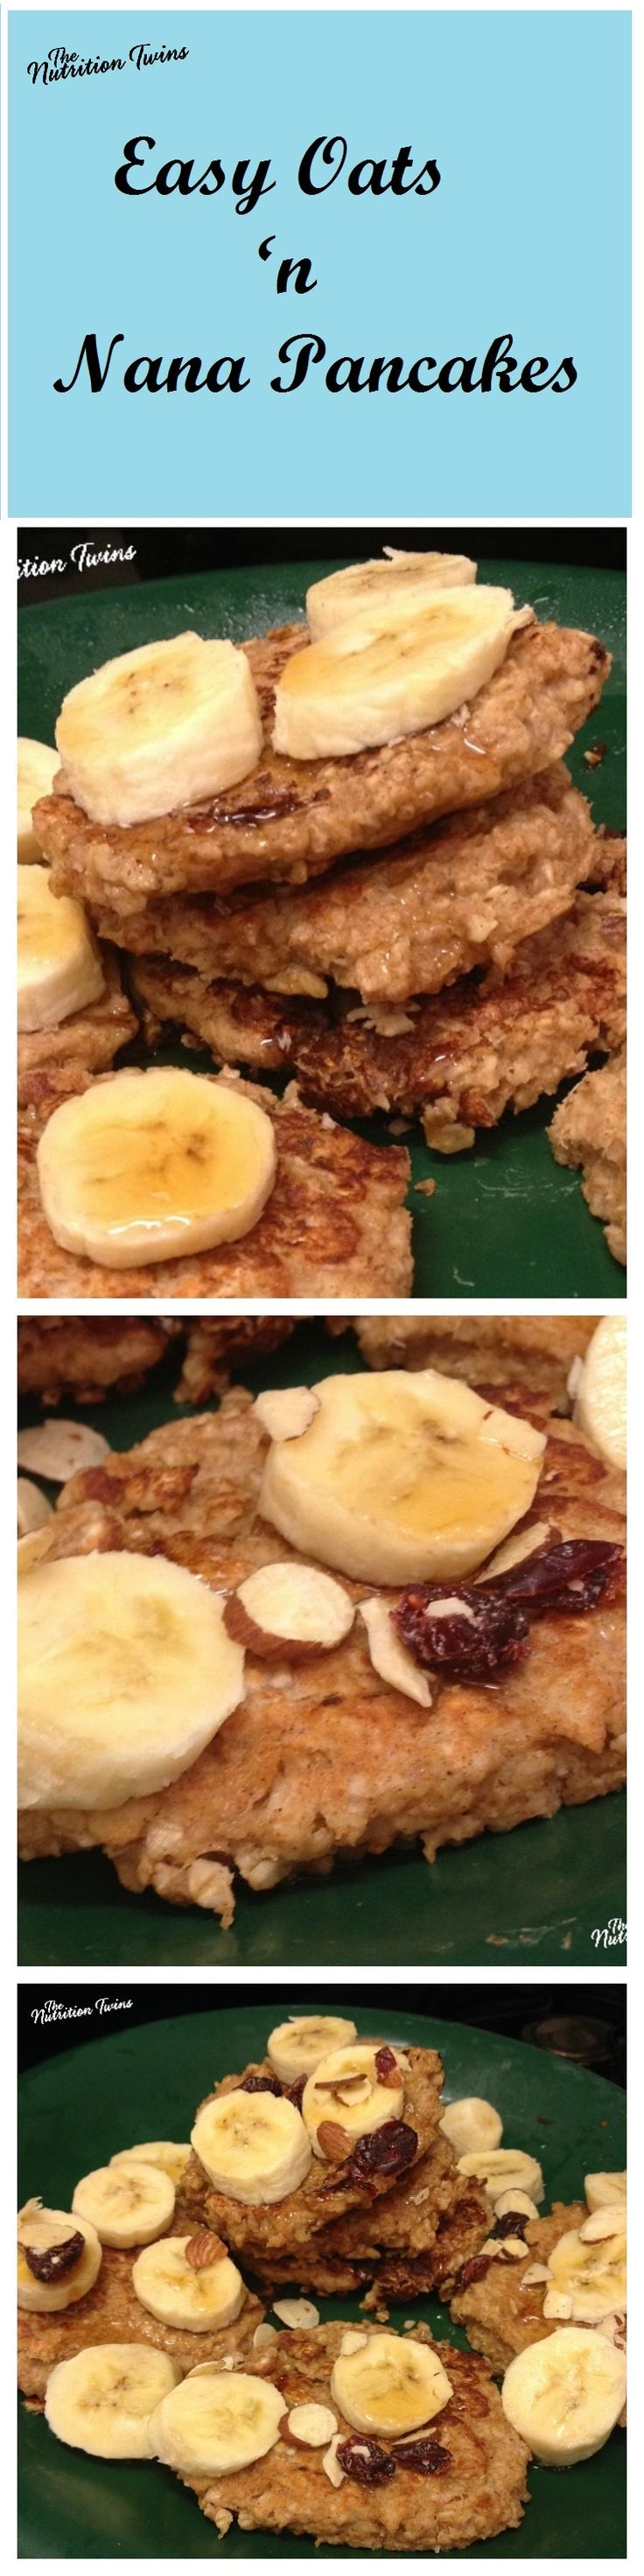 Easy Oats 'n Nana Pancakes | Only 75 Calories | 5 Simple Ingredients | @egglandsbest  For MORE RECIPES, Nutrition & Fitness Tips please SIGN UP for our FREE NEWSLETTER www.NutritionTwin... | #client